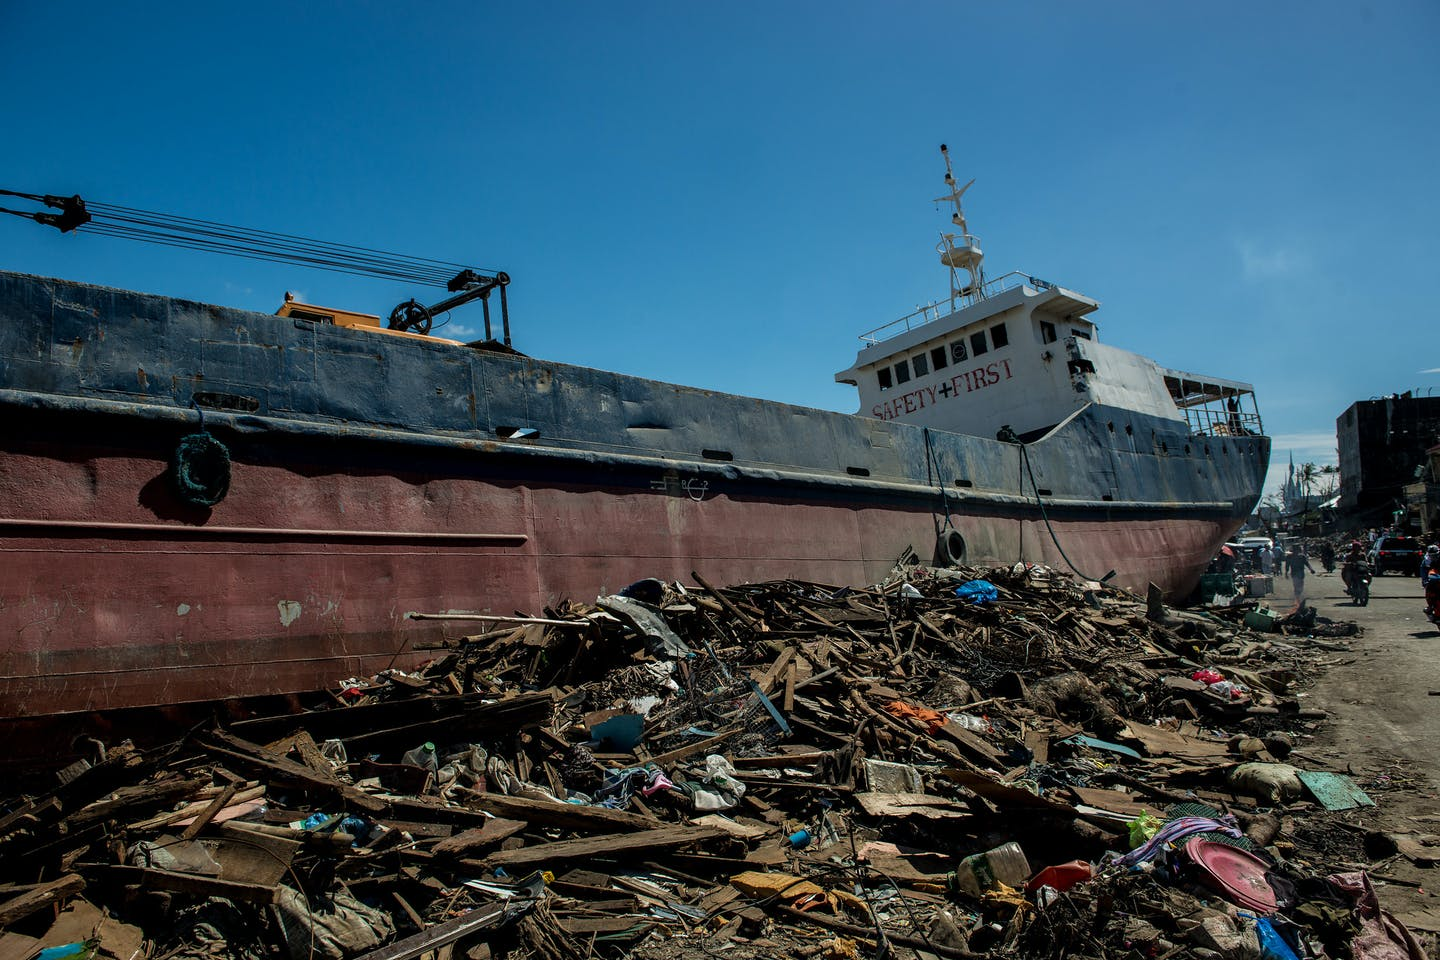 Cargo ship swept ashore by Typhoon Haiyan in the Philippines